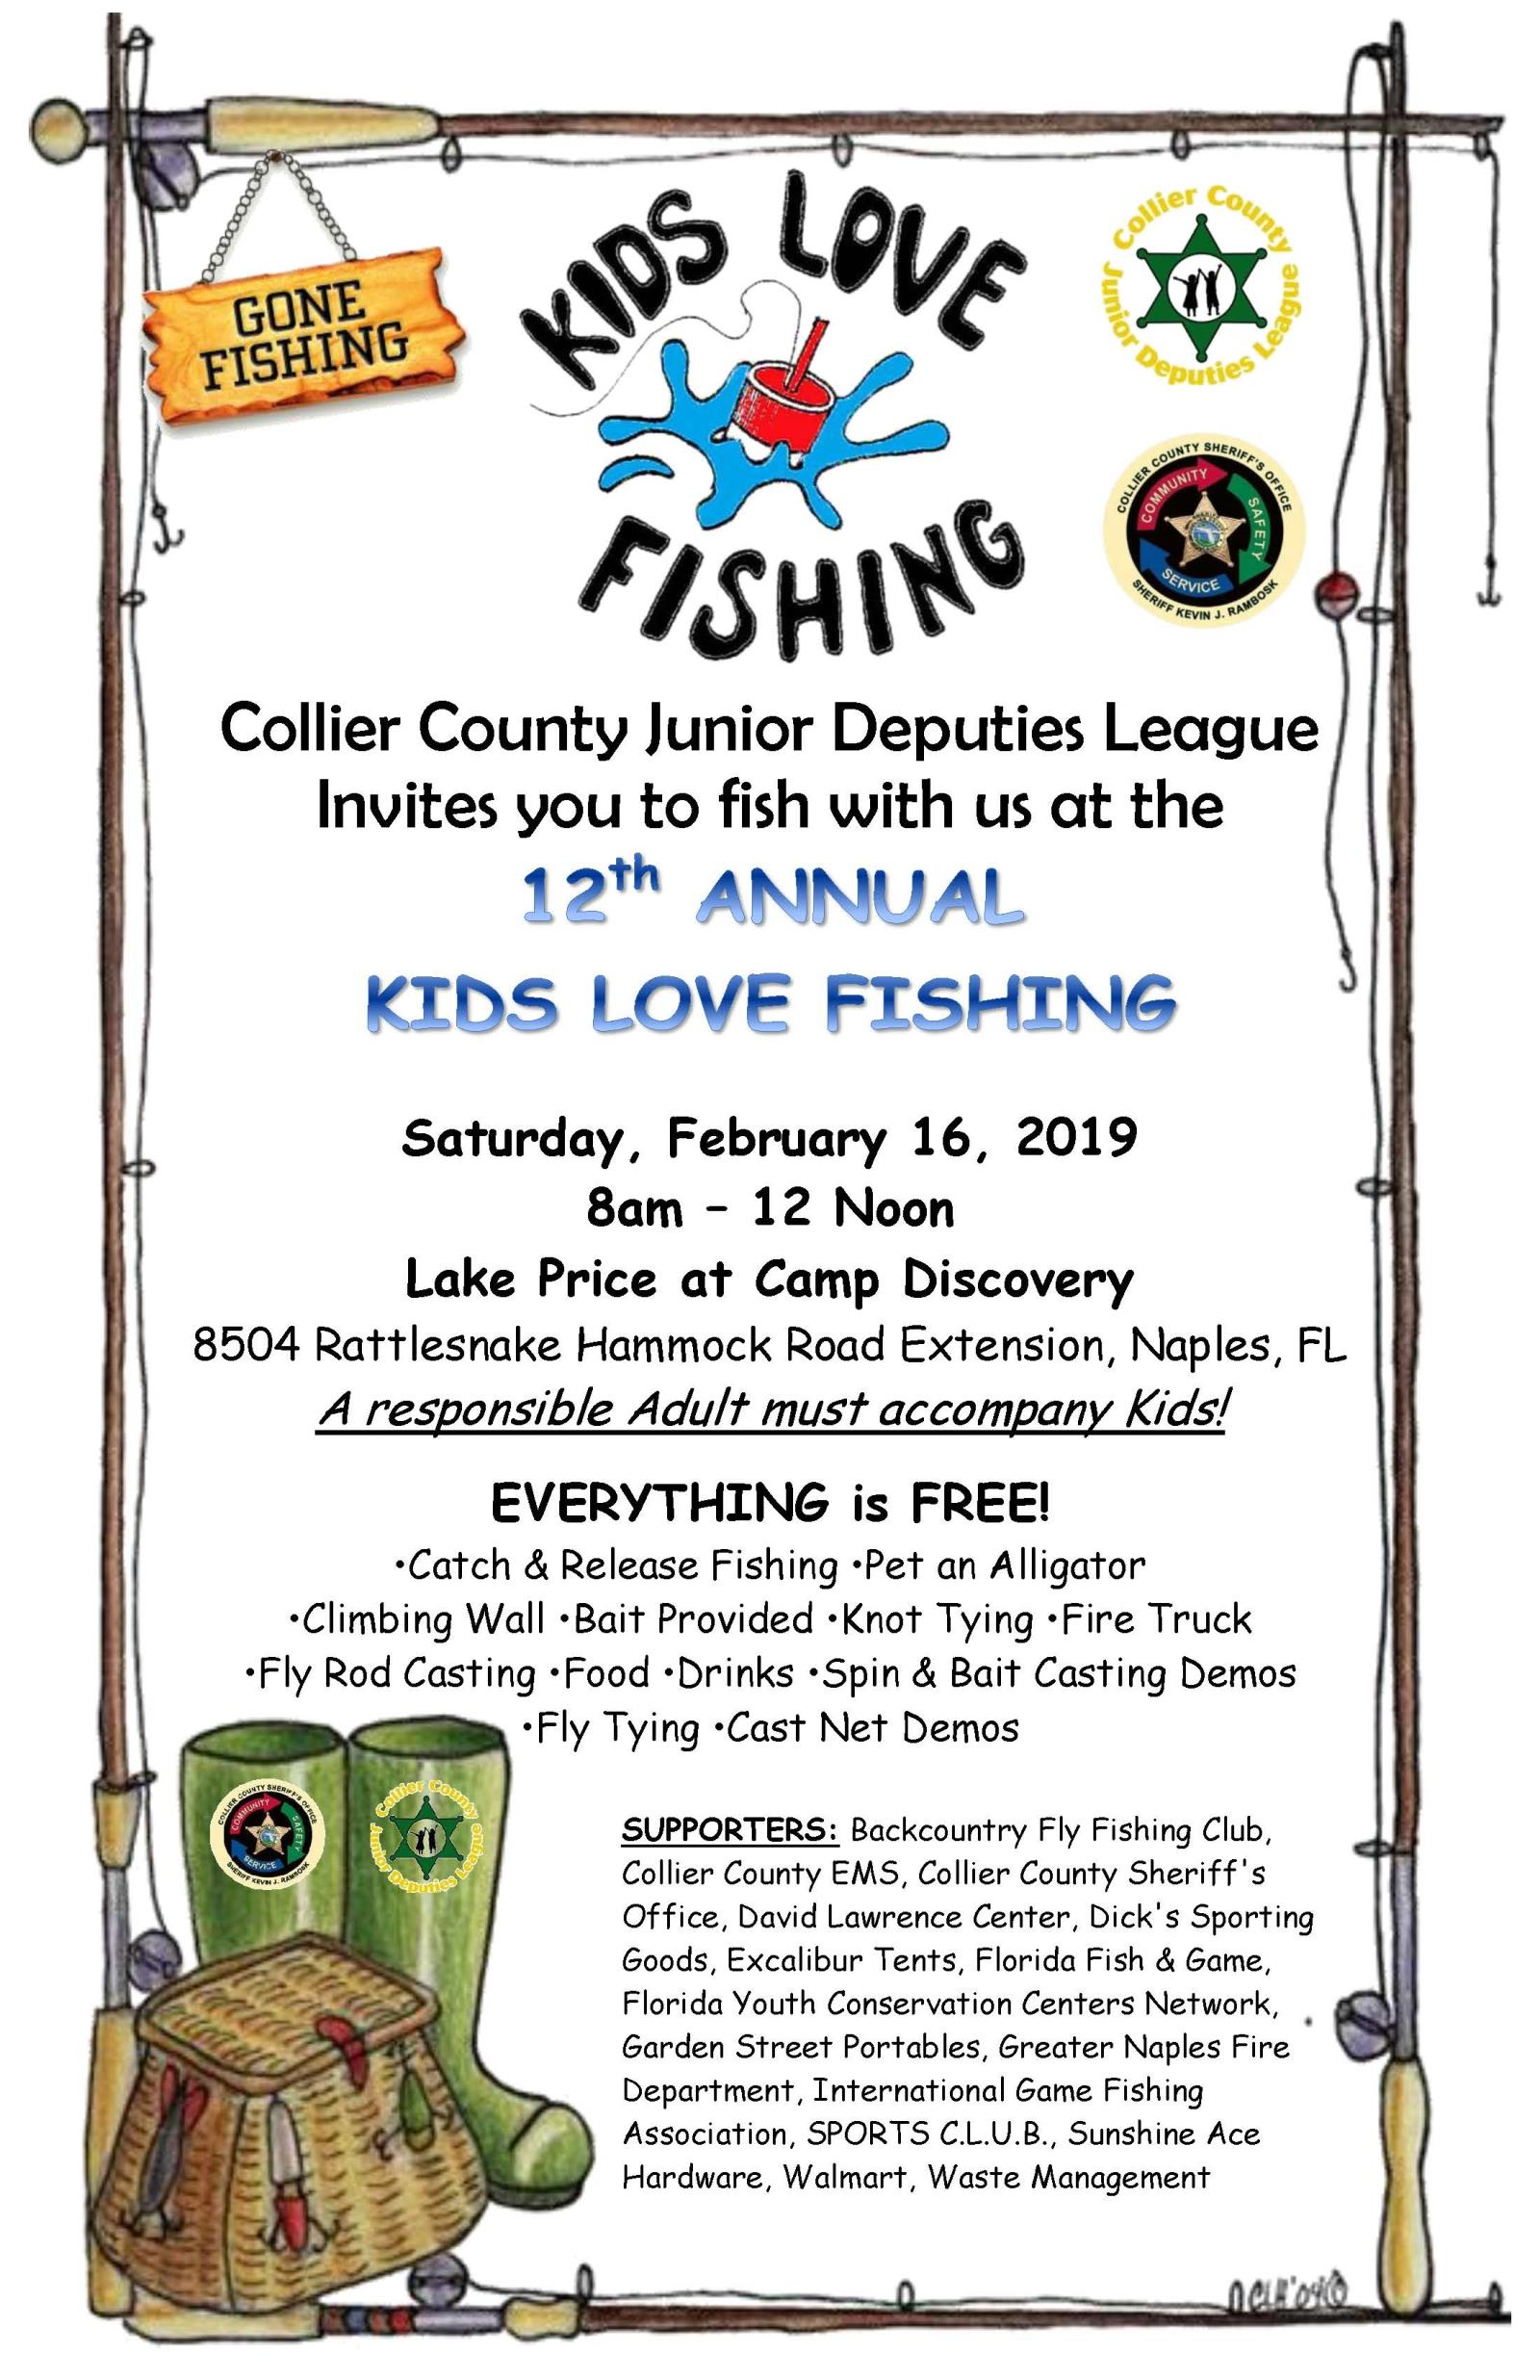 12th ANNUAL KIDS LOVE FISHING 2019 - 11X17 POSTER